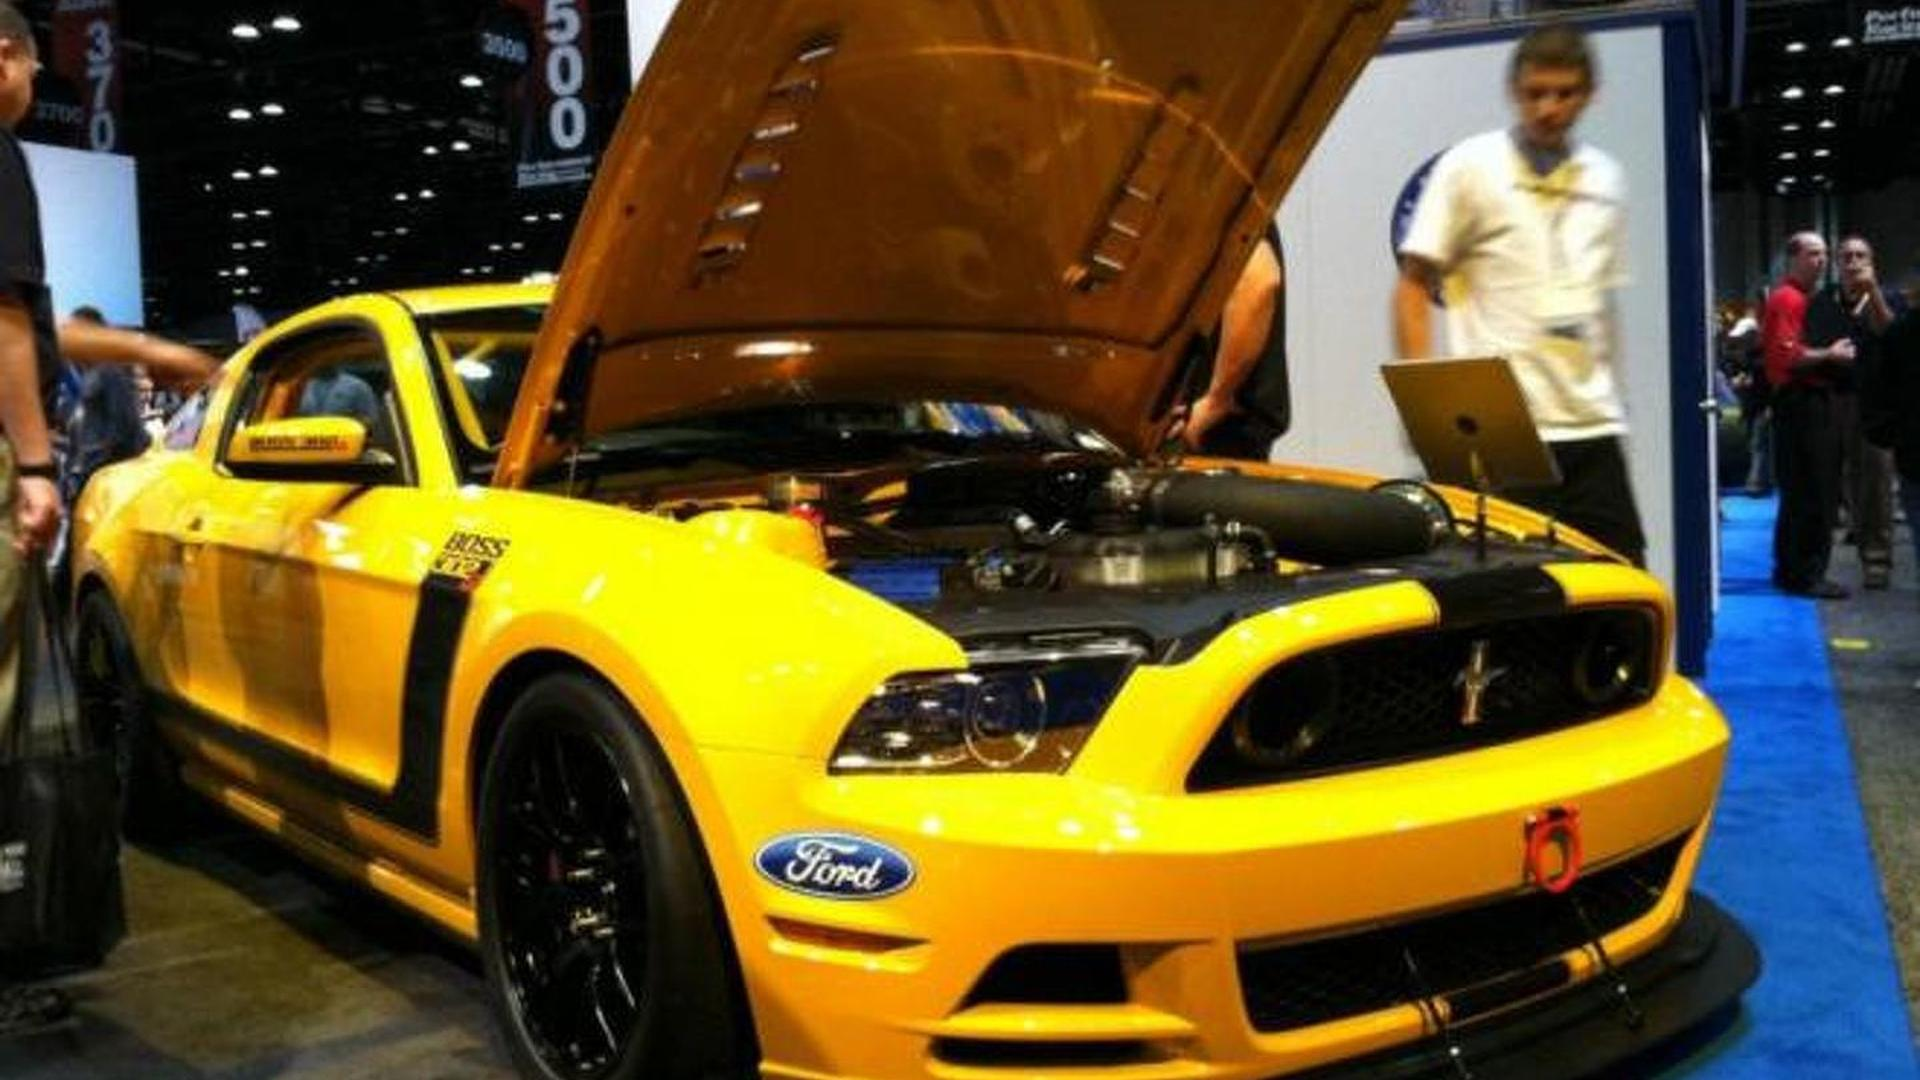 Ford Mustang Boss 302SX concept unveiled